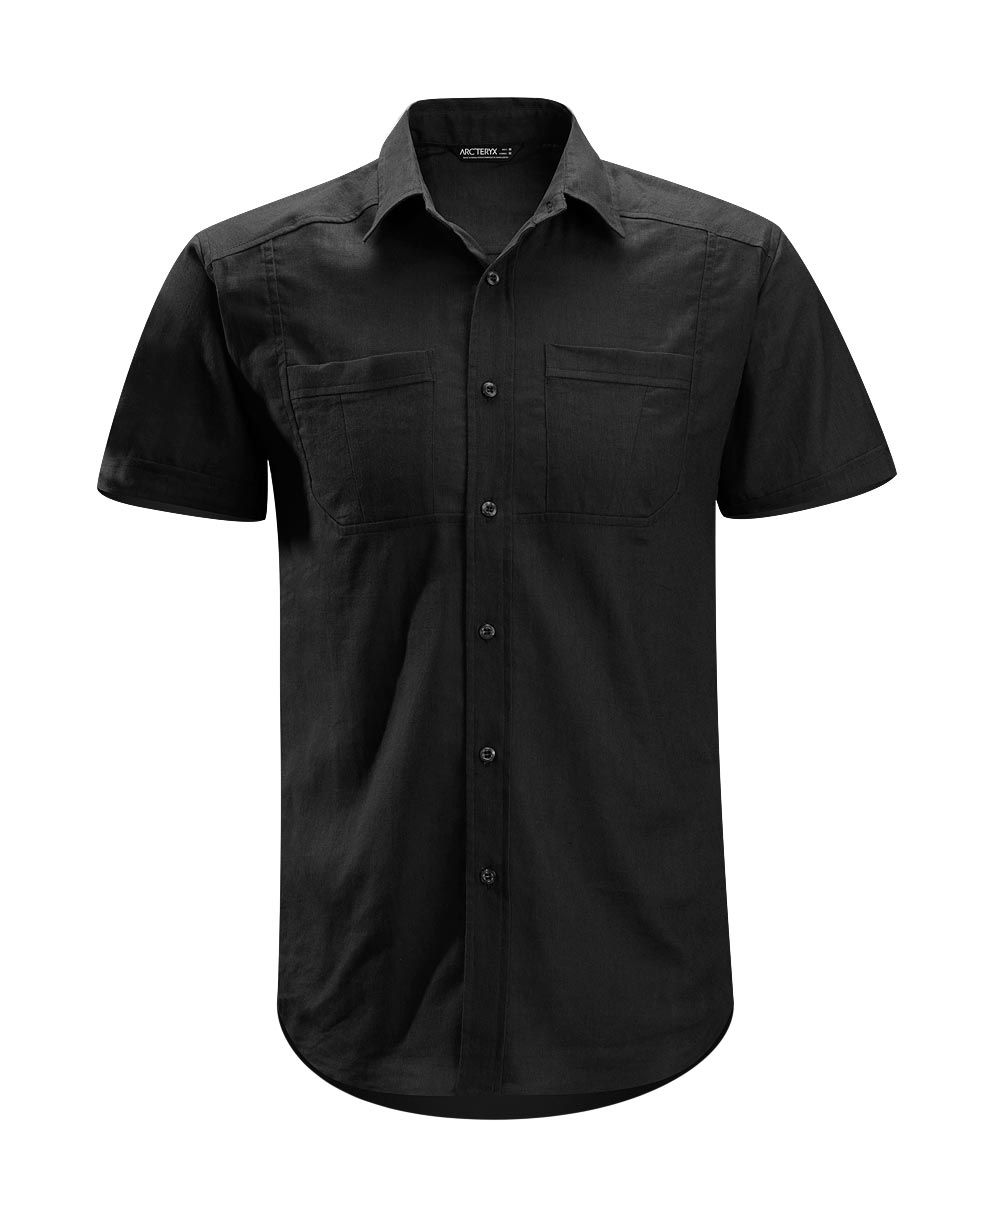 Arcteryx Black Ravelin Shirt SS - New